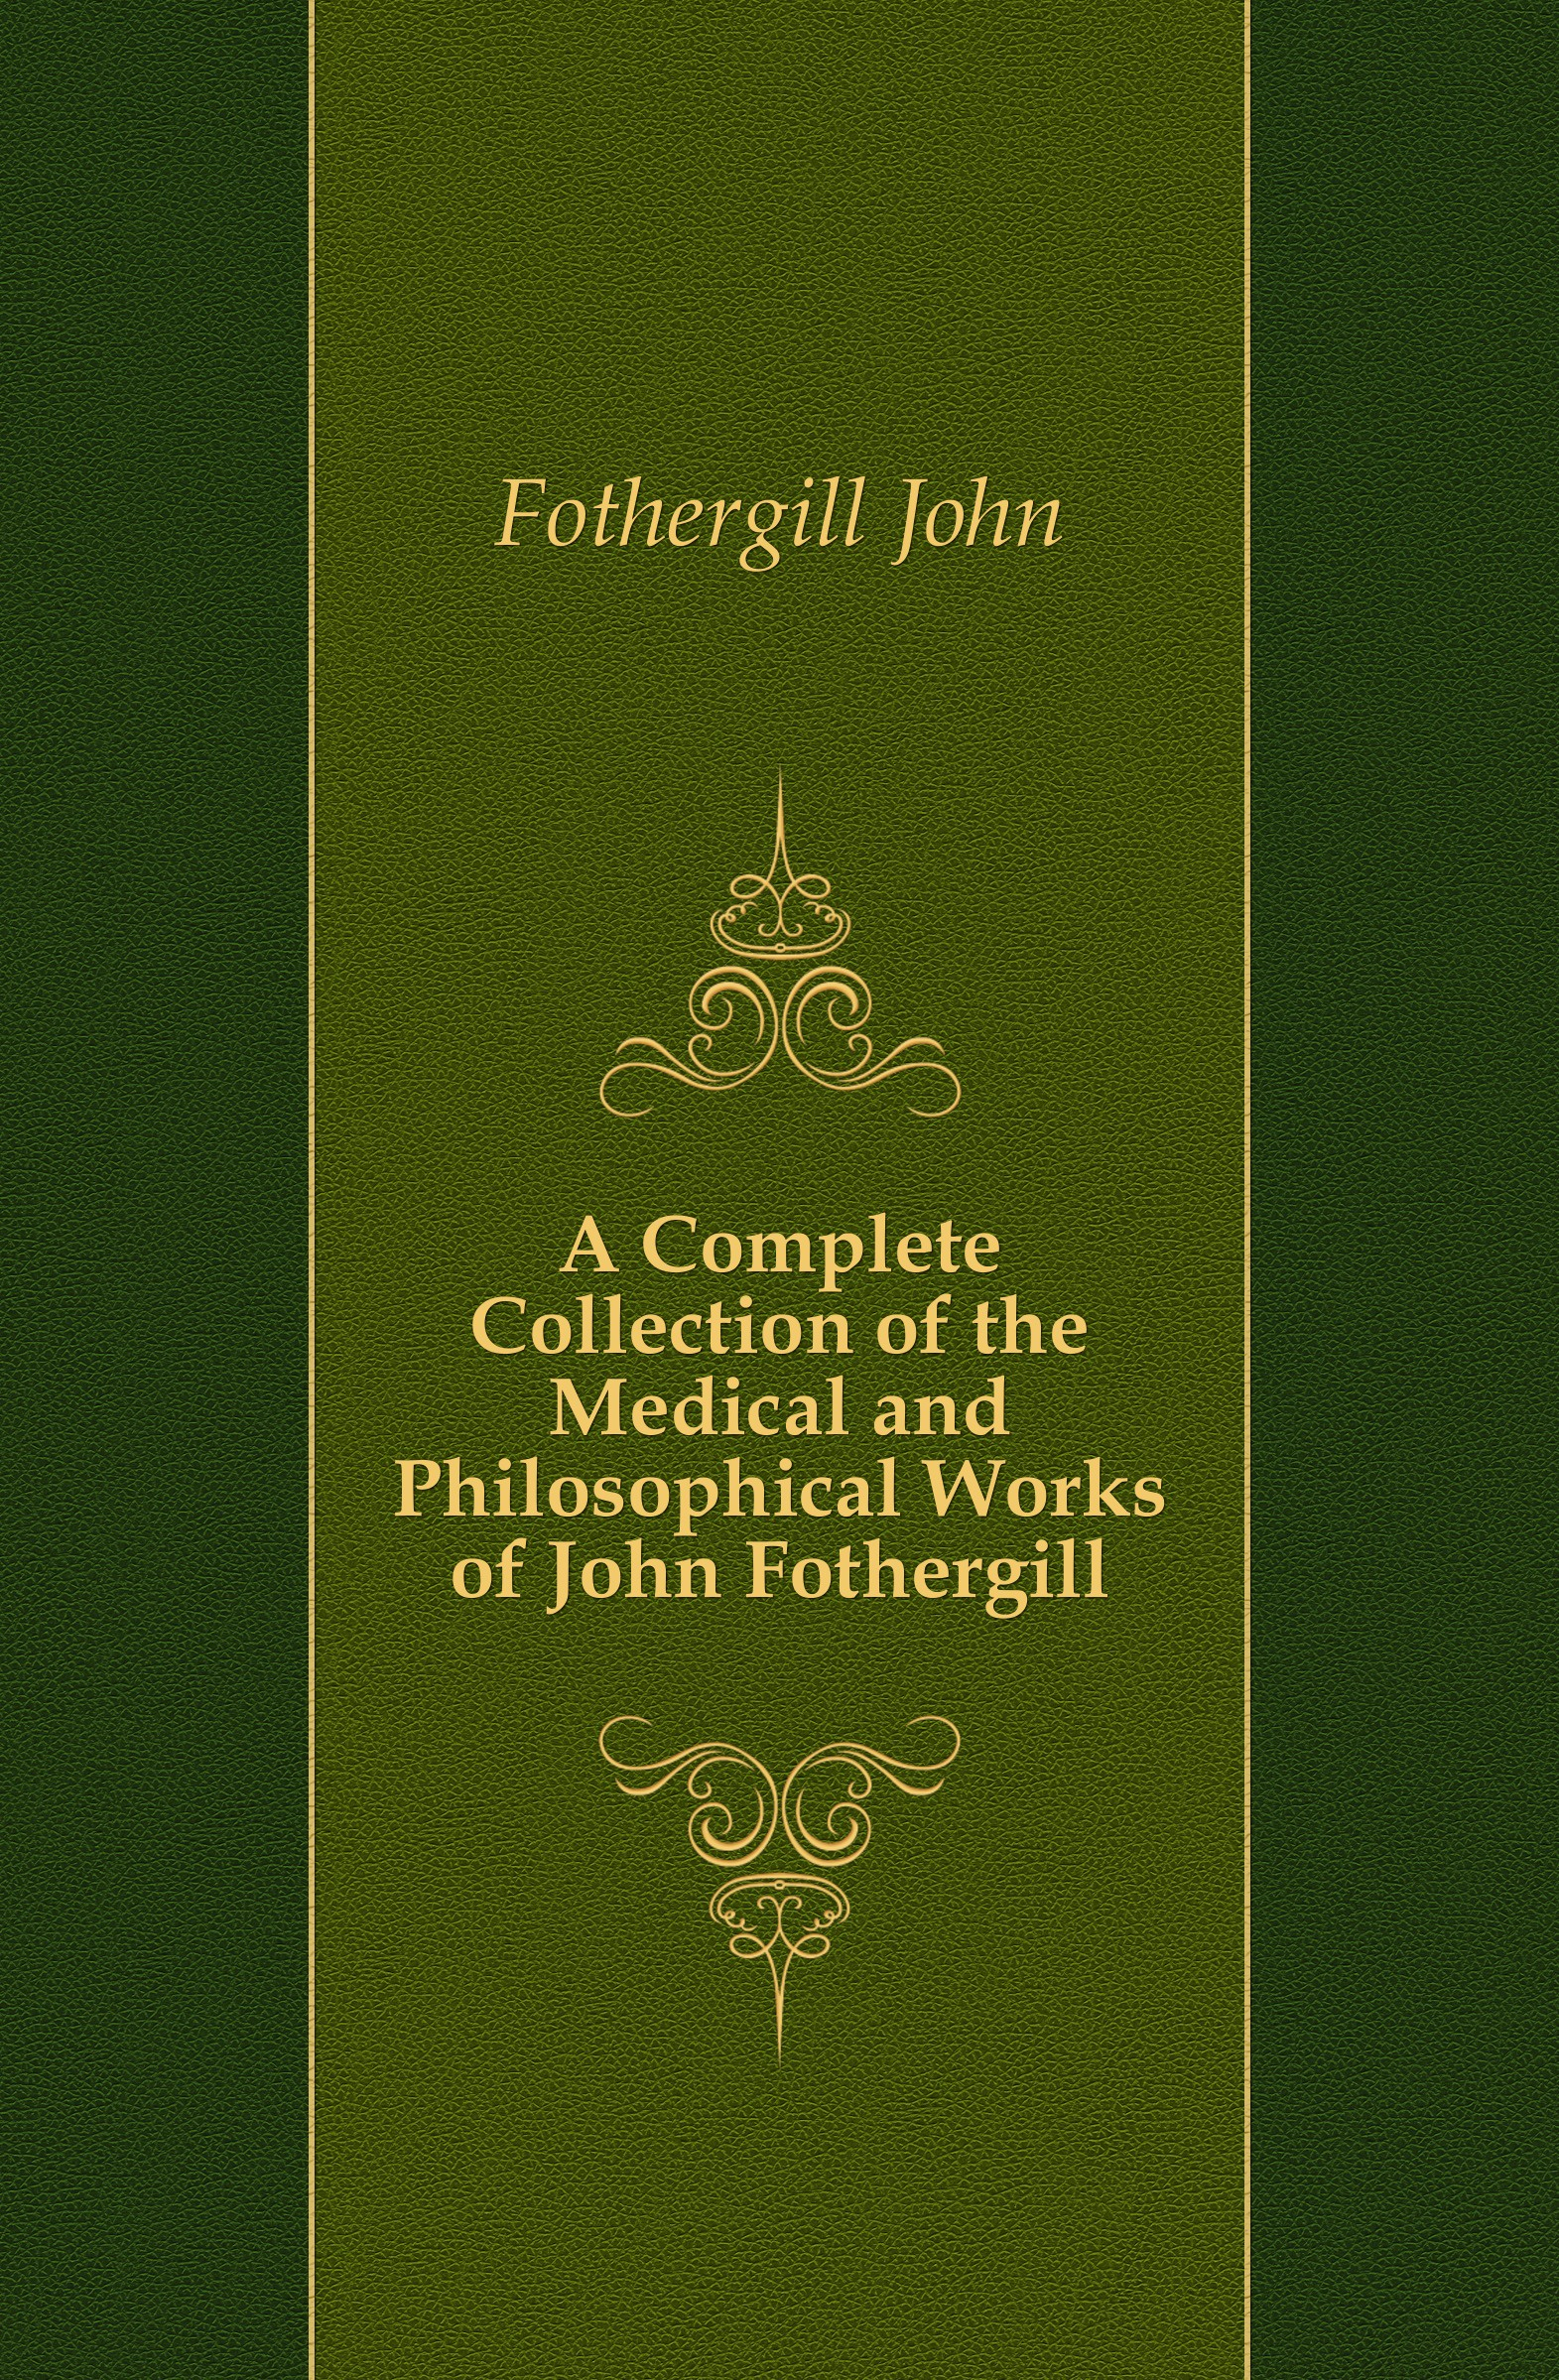 Fothergill John A Complete Collection of the Medical and Philosophical Works of John Fothergill